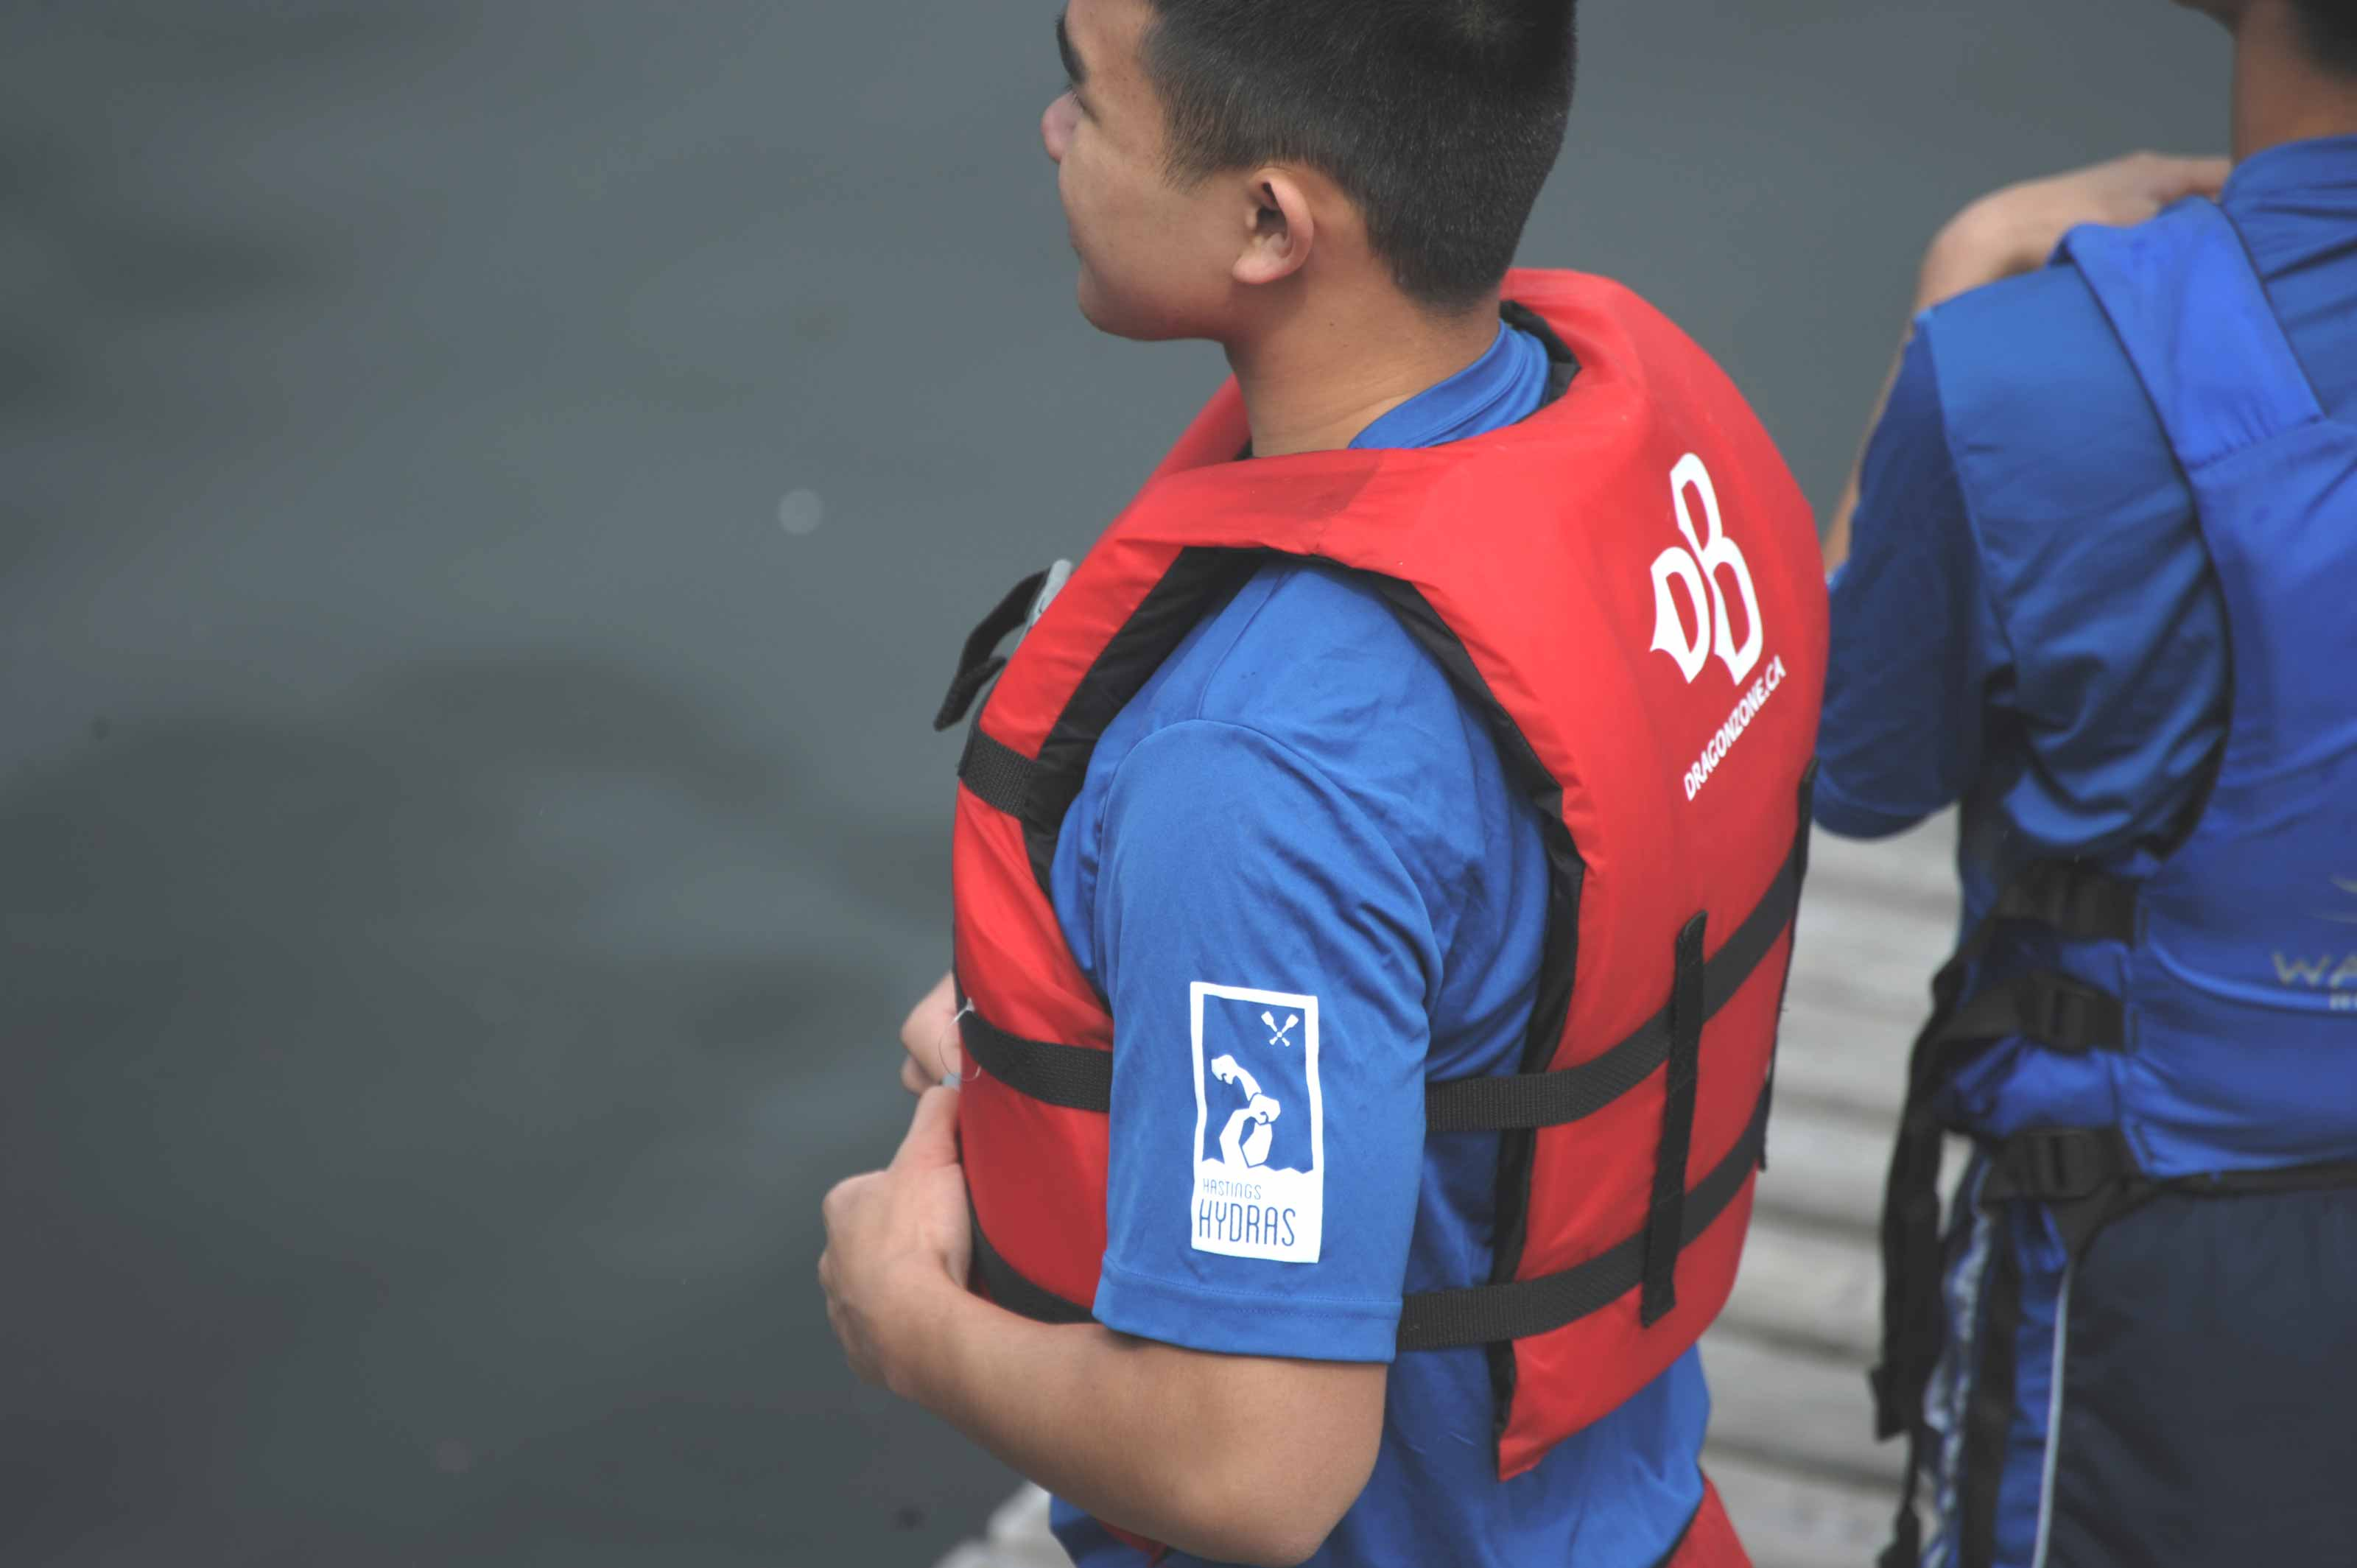 Dragon Boat team member wearing a blue shirt with Hasting Hydras logo on the sleeve — by Yagnyuk.